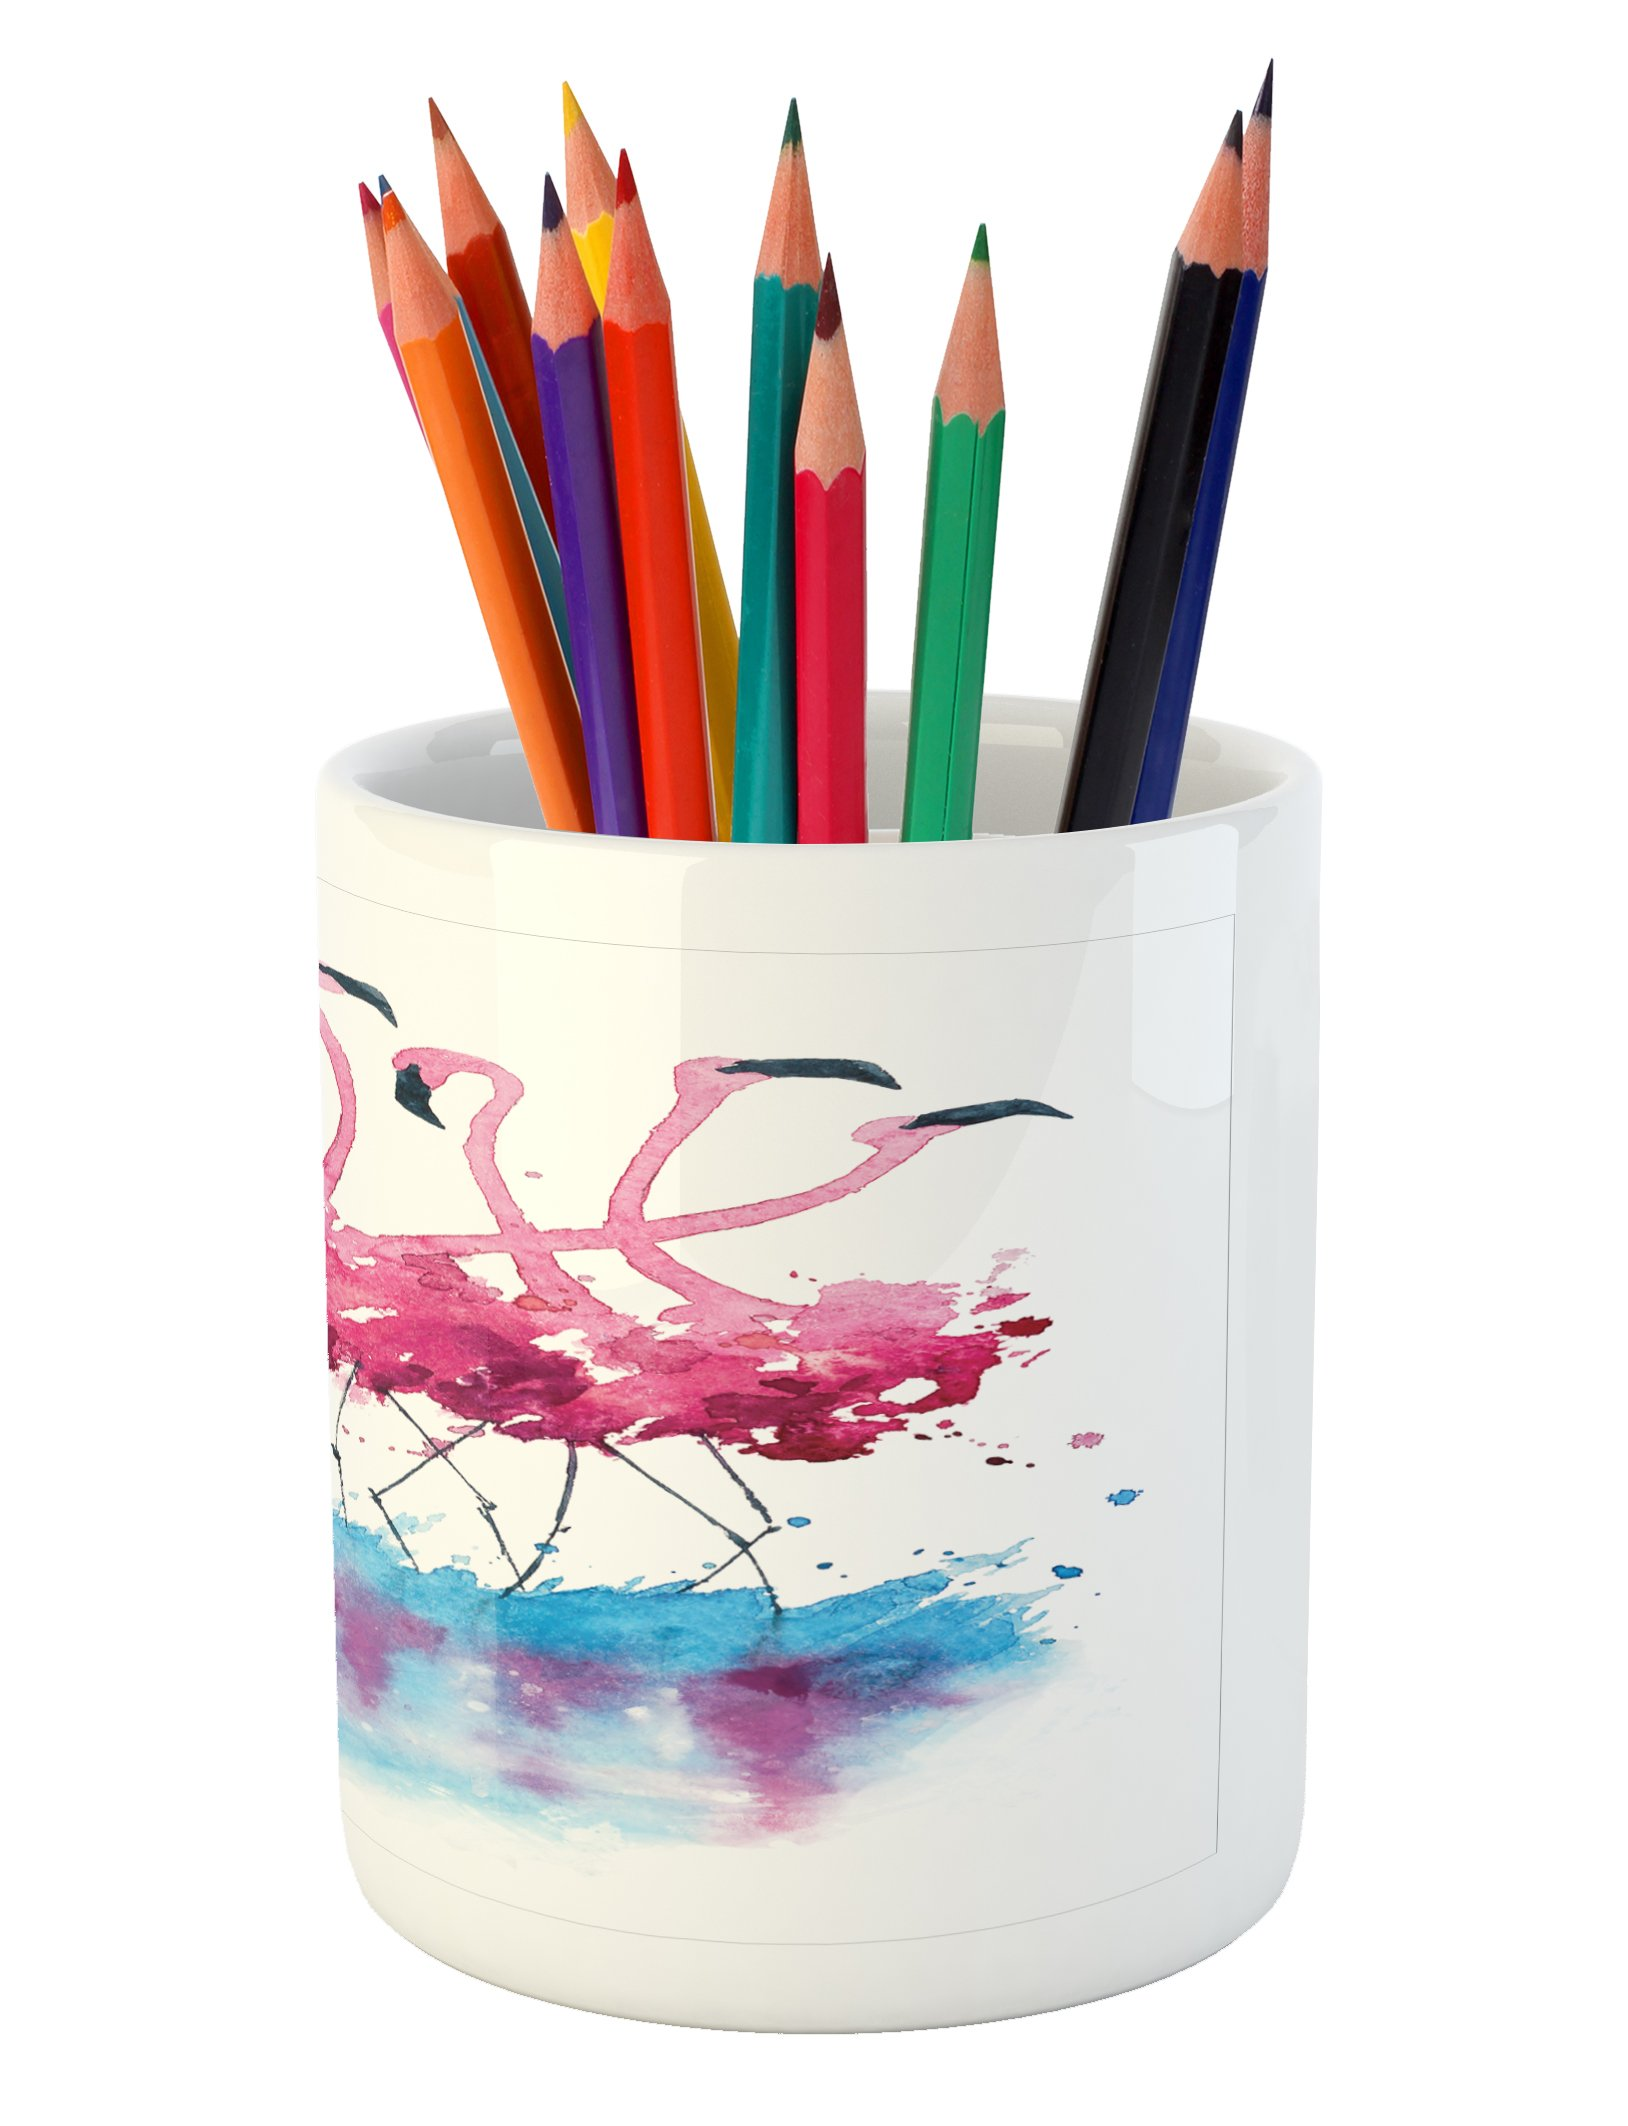 Ambesonne Animal Pencil Pen Holder, Flamingos Love Birds Feather Romance Brushstroke Splash Watercolor Effect, Printed Ceramic Pencil Pen Holder for Desk Office Accessory, Pink Blue Purple by Ambesonne (Image #3)